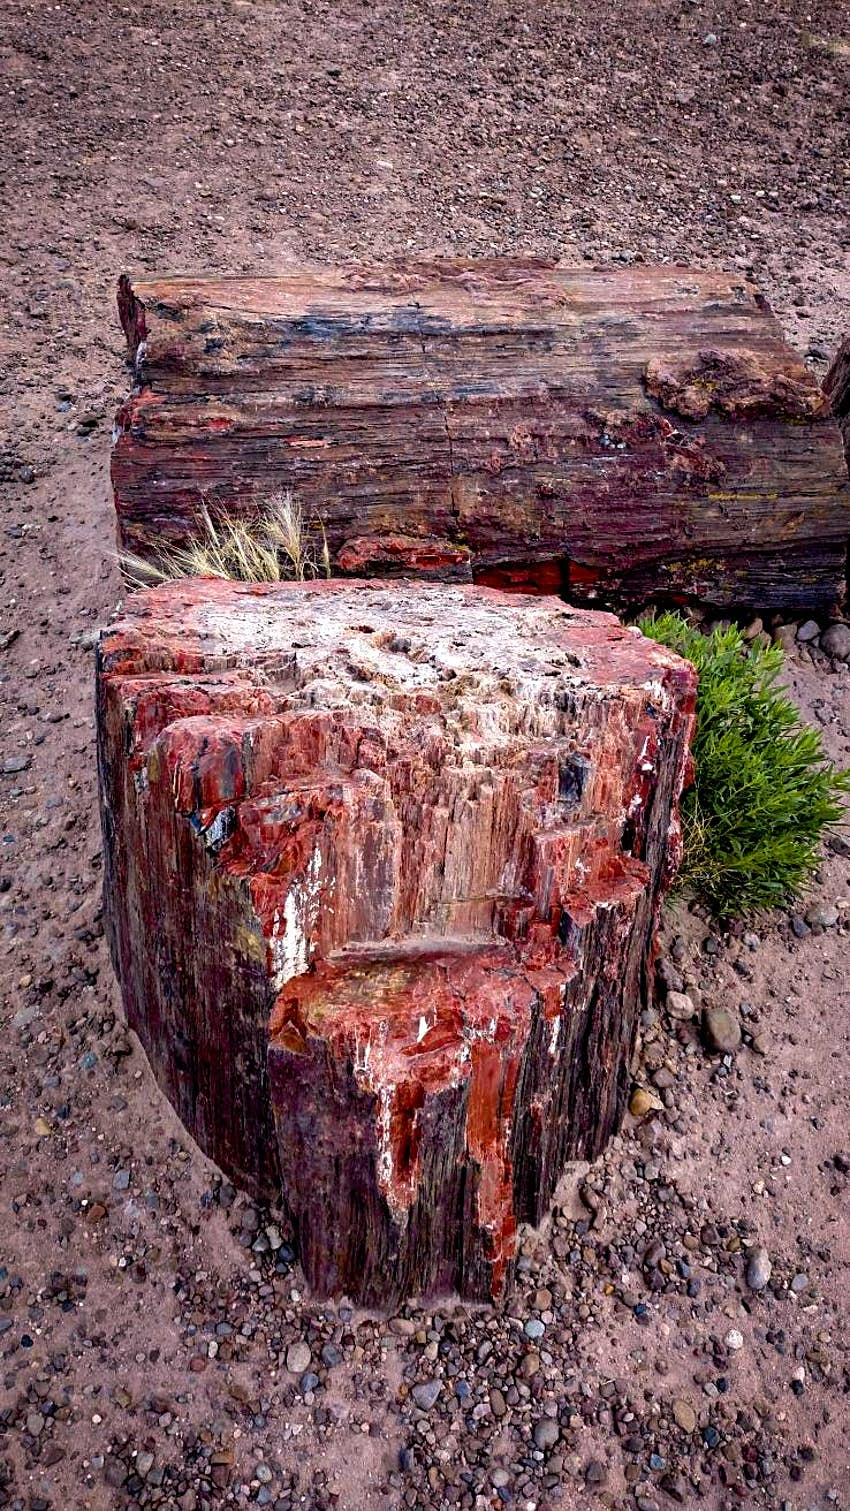 A close-up of petrified wood at Petrified Forest National Park. The wood is a reddish-brown color, and it sits in dry, stony soil, with a small, bright green bush beside it.